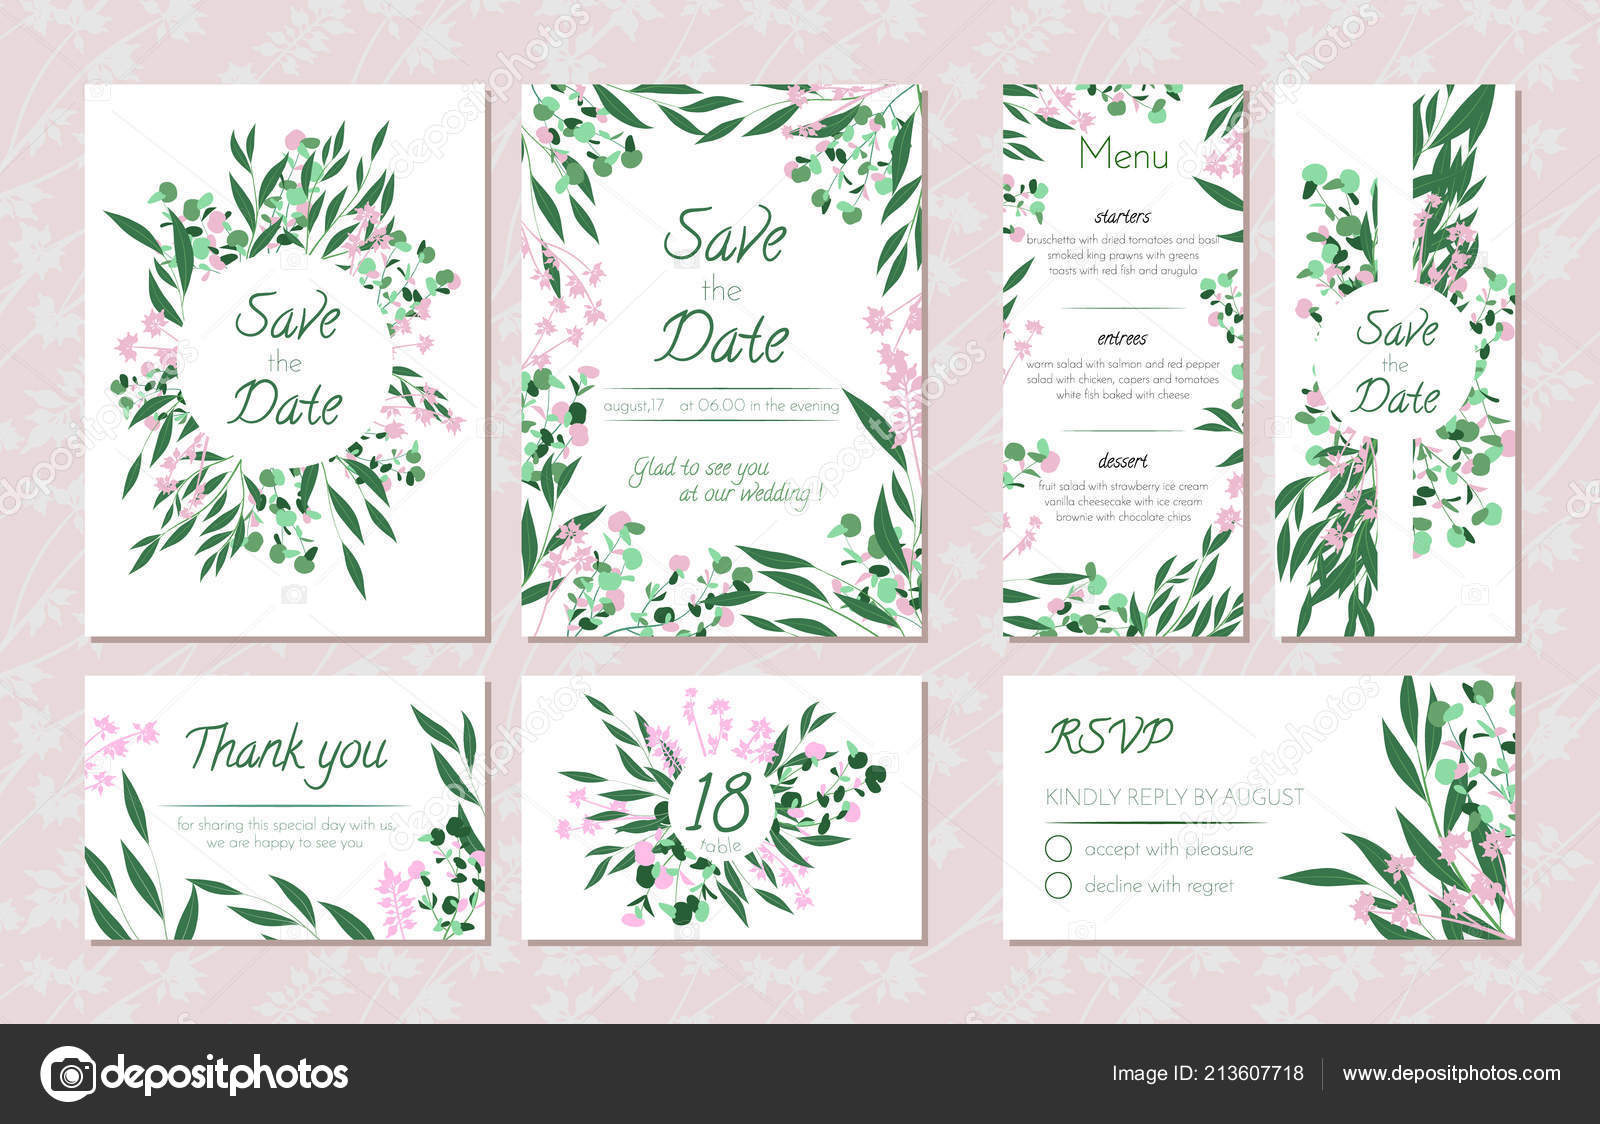 Wedding Card Templates Set With Eucalyptus Decorative Frames Leaves Floral And Herbs Garland: Eucalytus Garland Wedding Place Card Templates At Websimilar.org